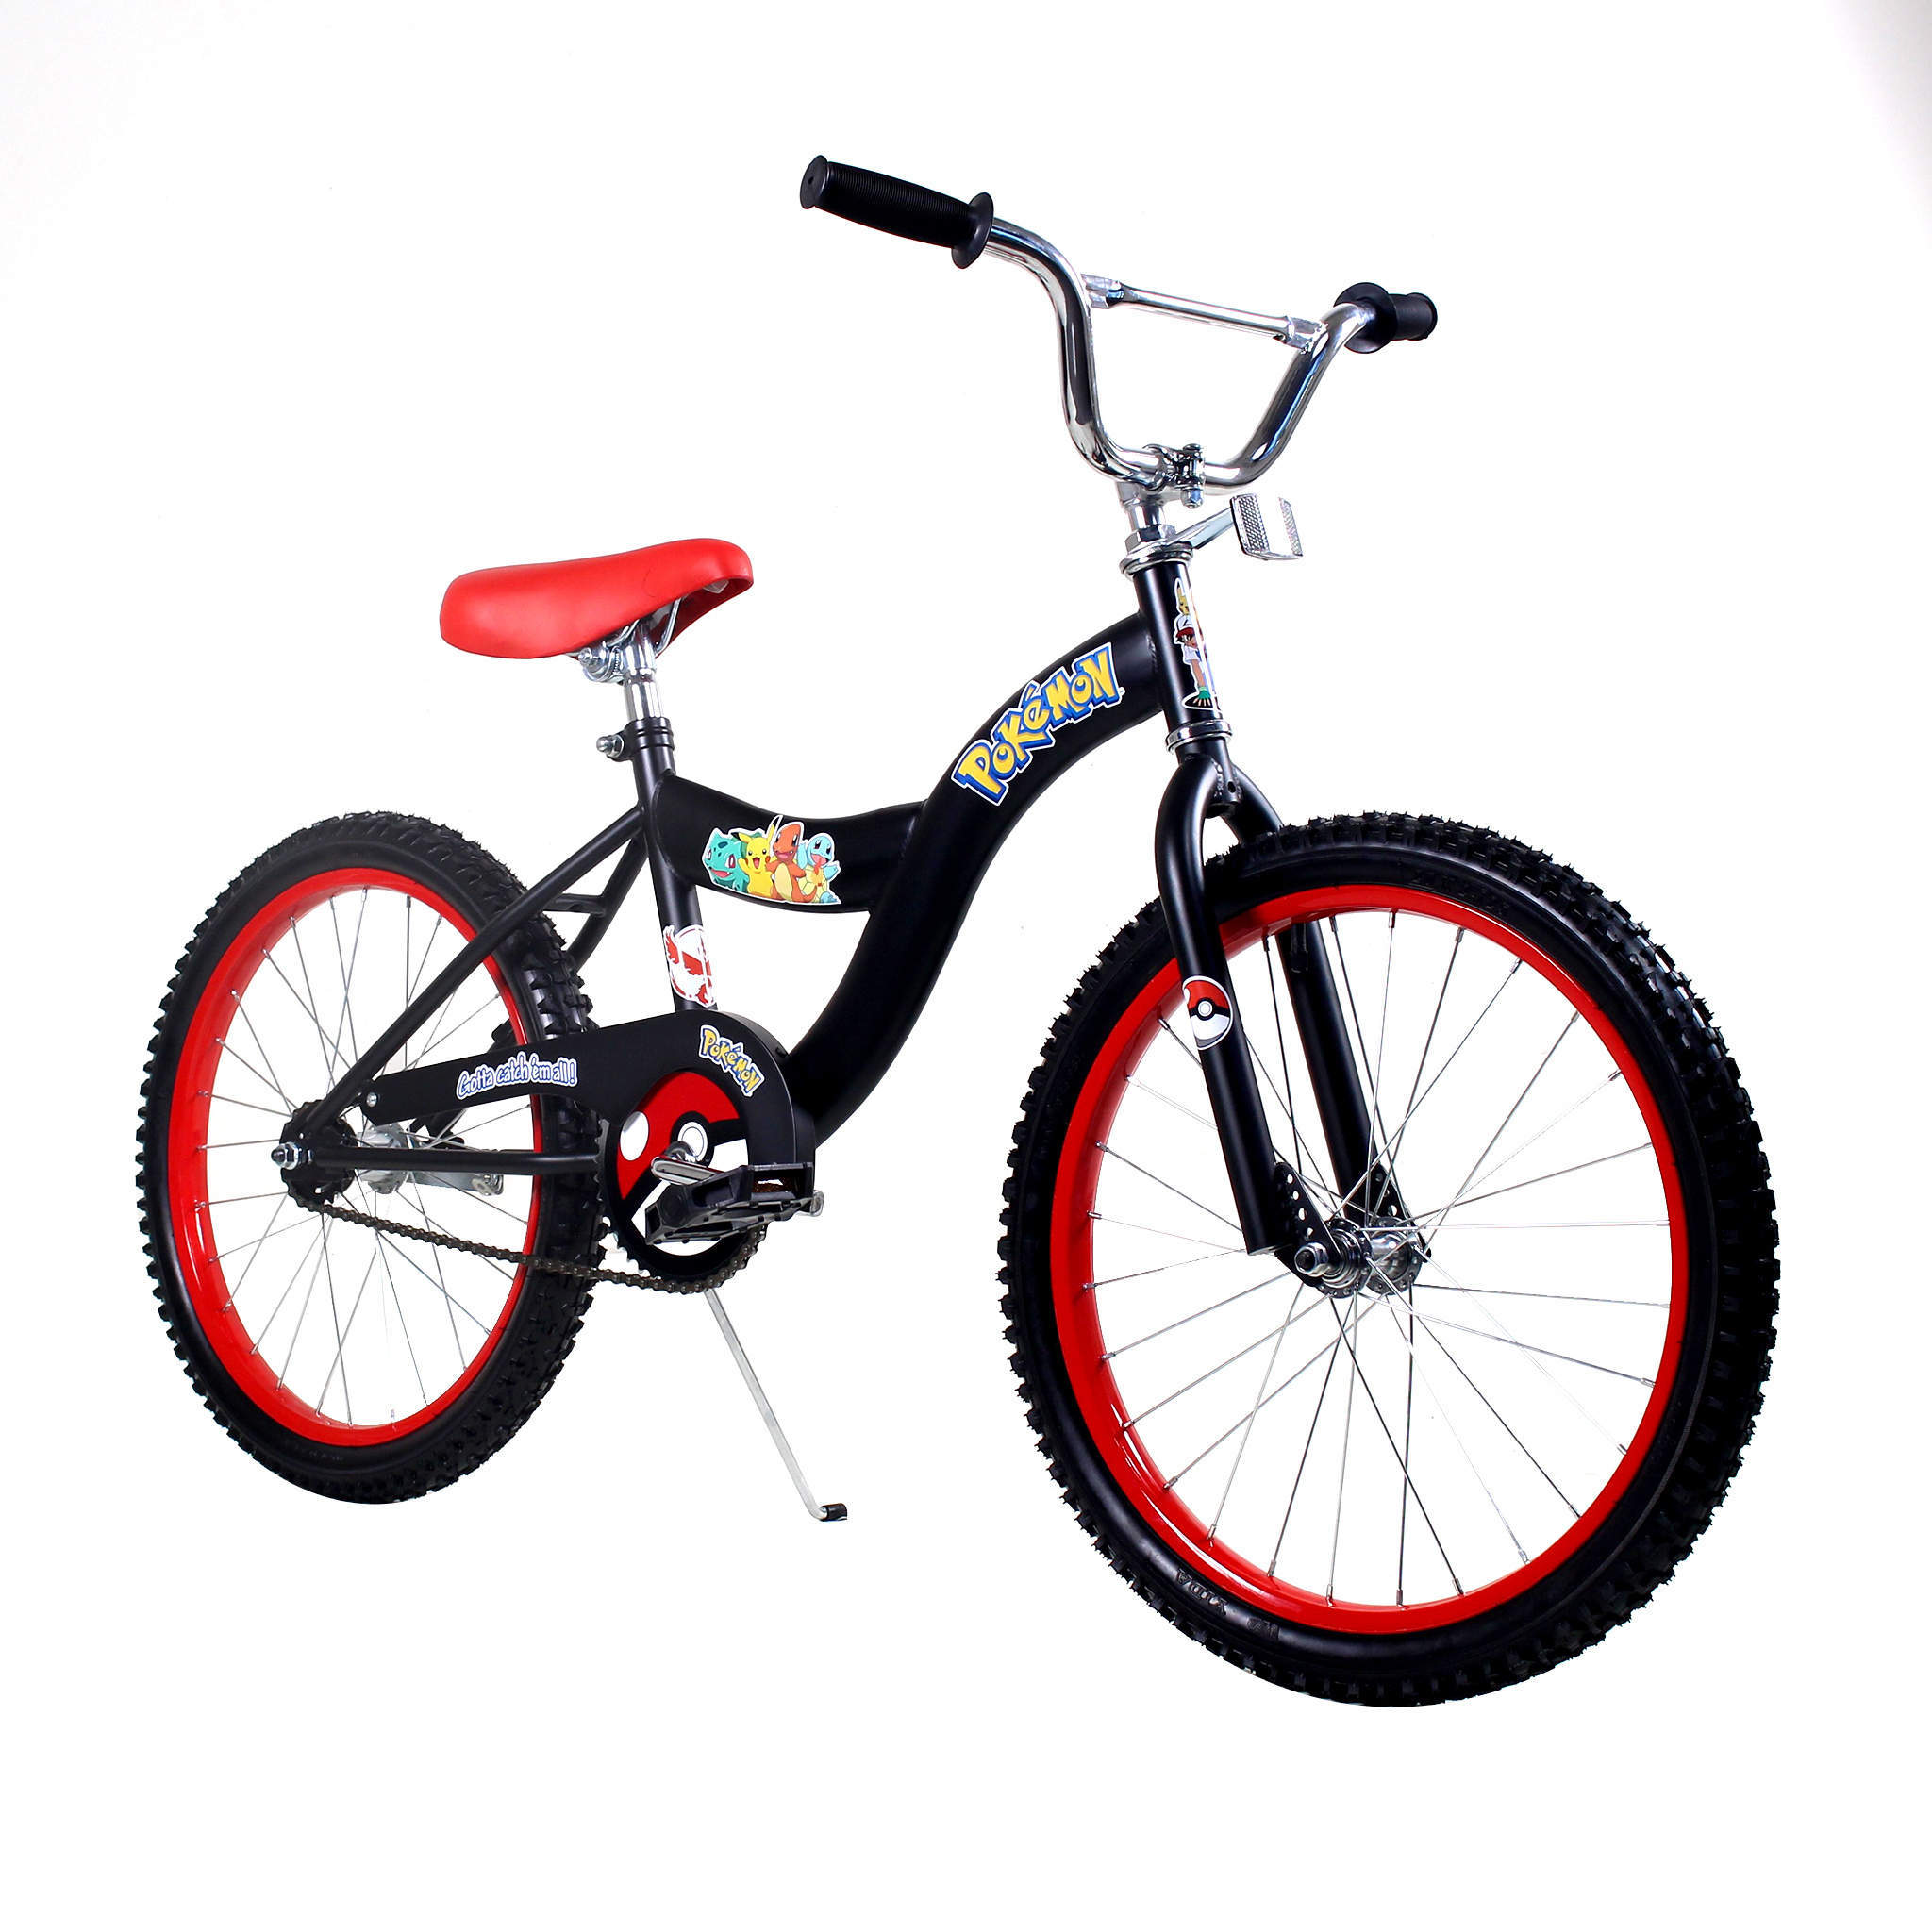 20-inch Boys BMX Bike Black by ZF Bikes, California